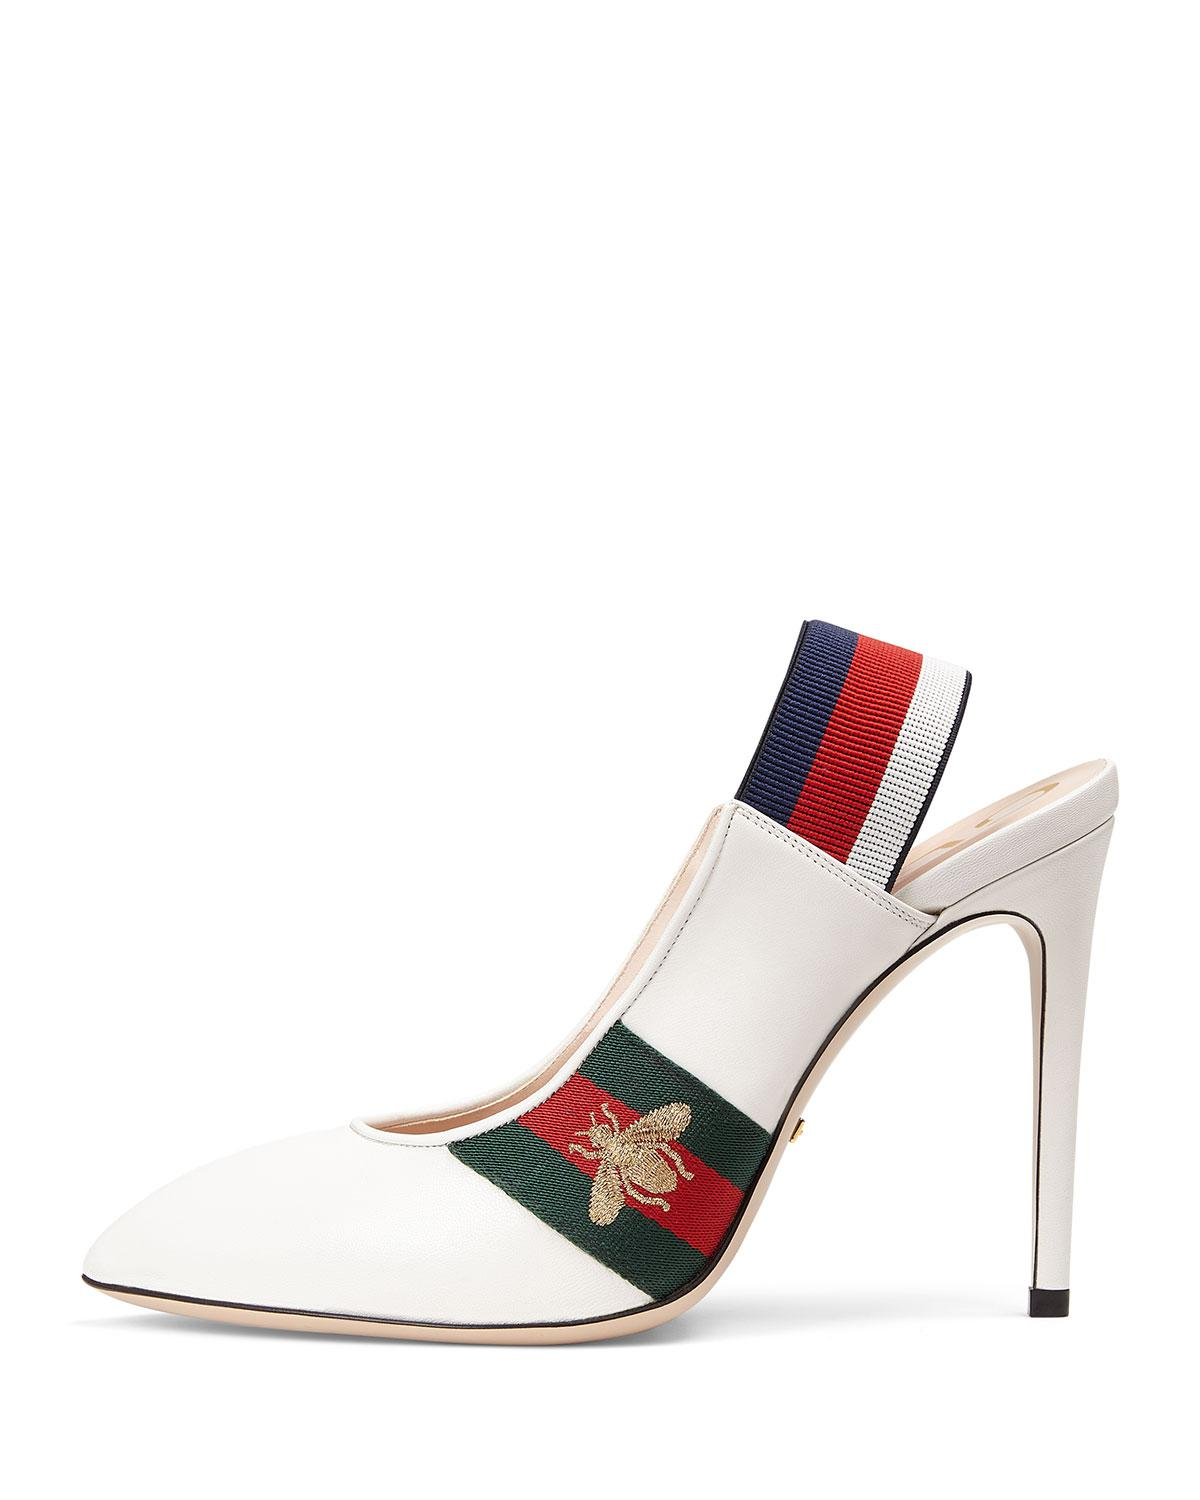 69e1af450b Gucci Leather Web Slingback Pump in White - Save 56% - Lyst